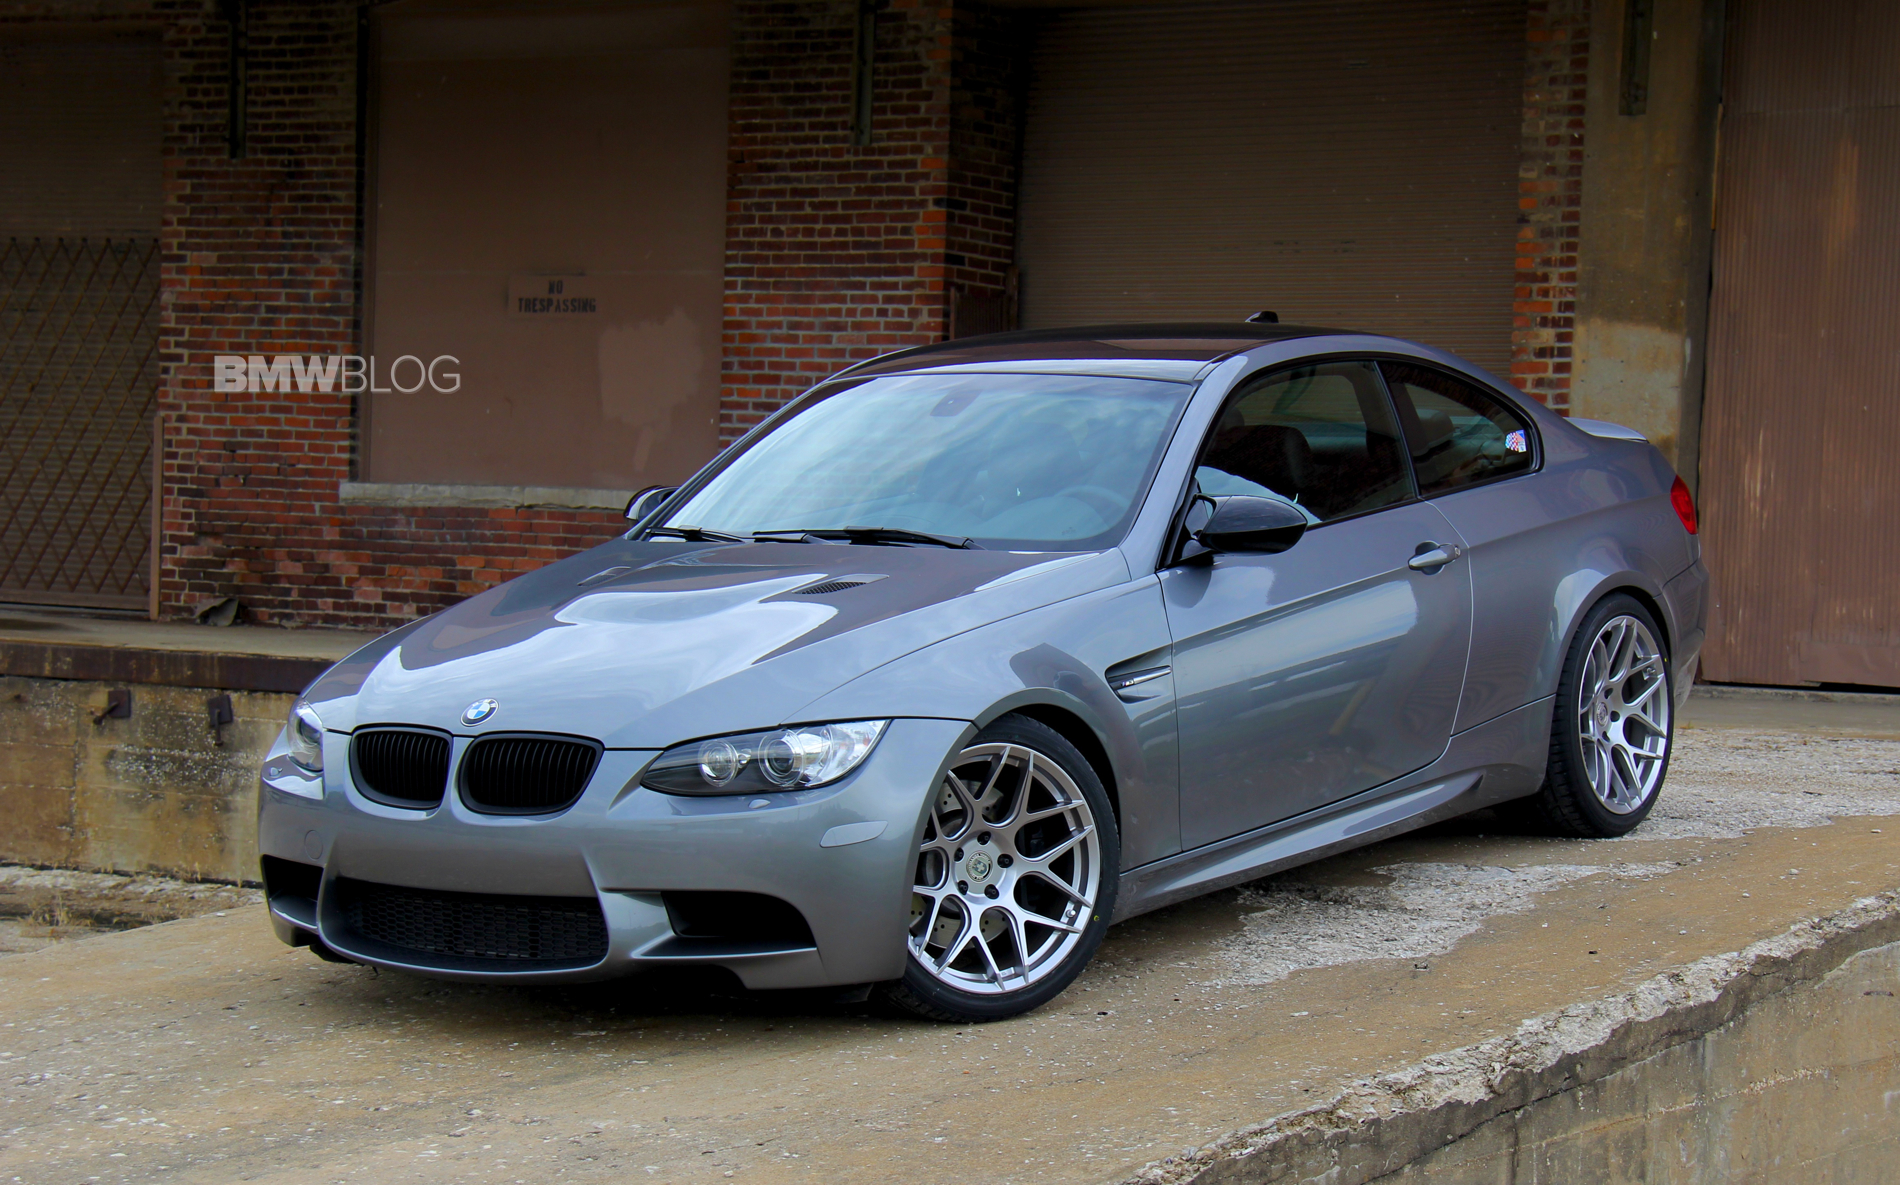 hre wheels e92 m3 21